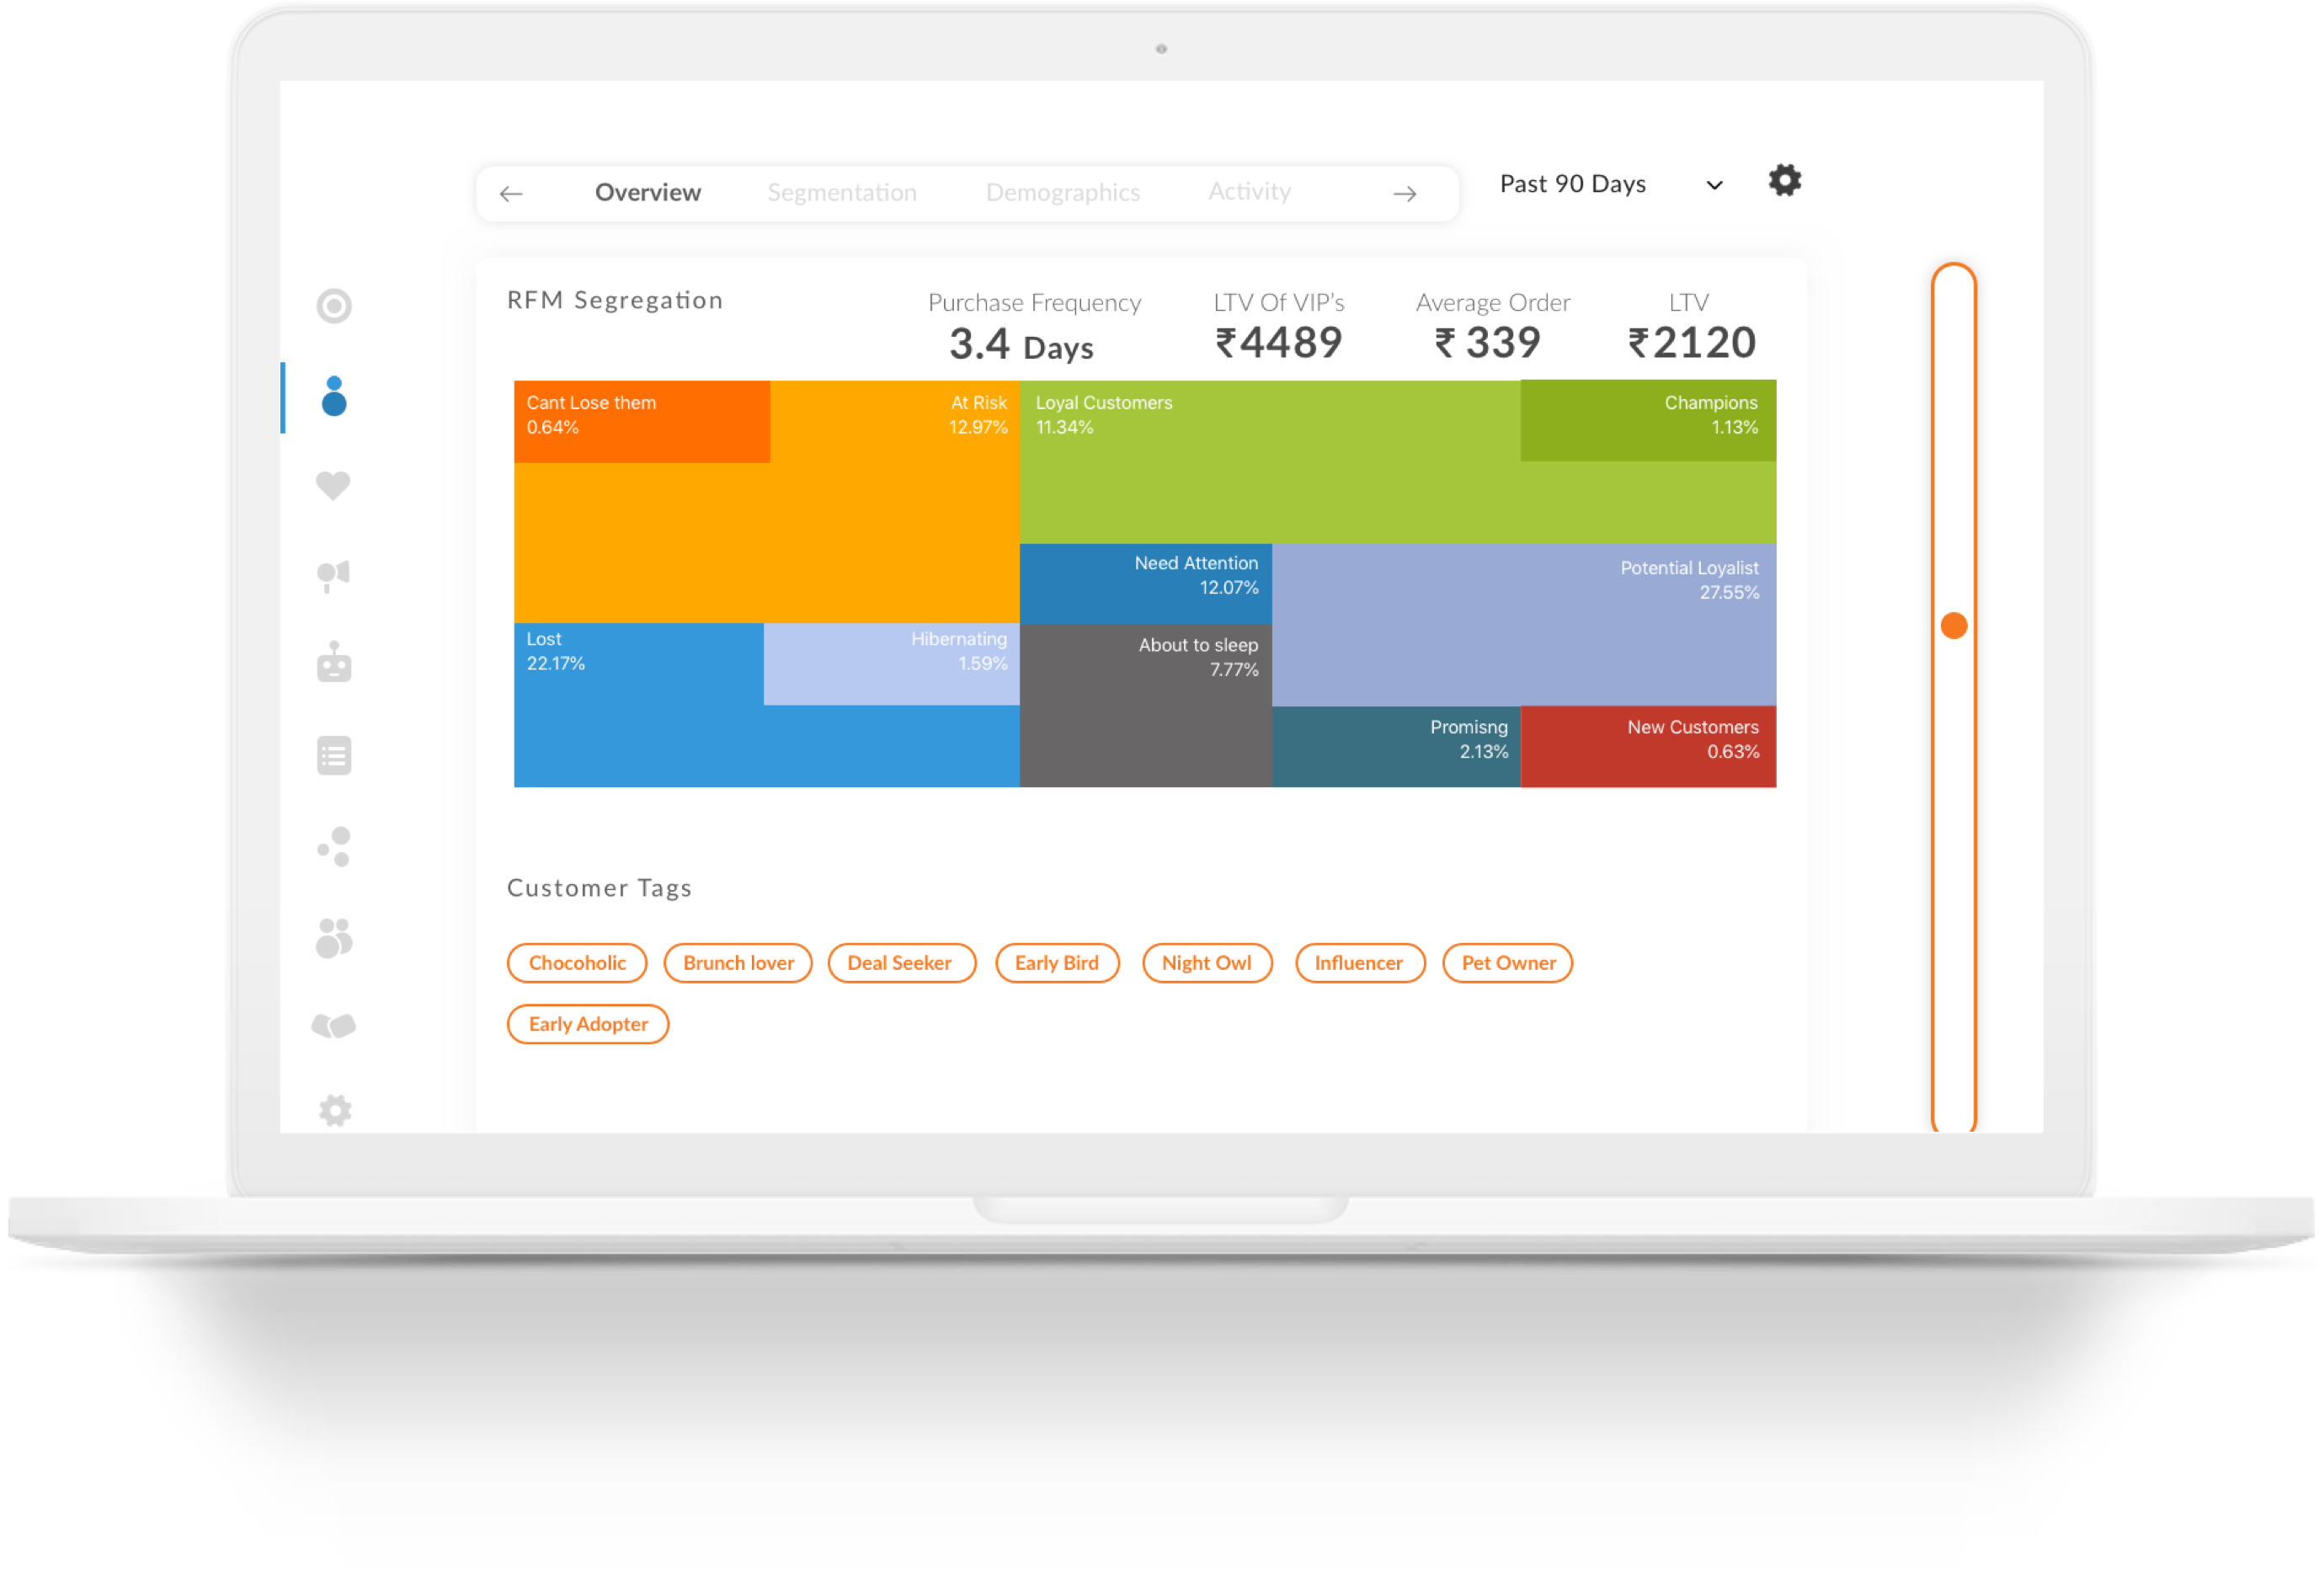 Screenshot of the Hashtag Loyalty merchant business dashboard in action